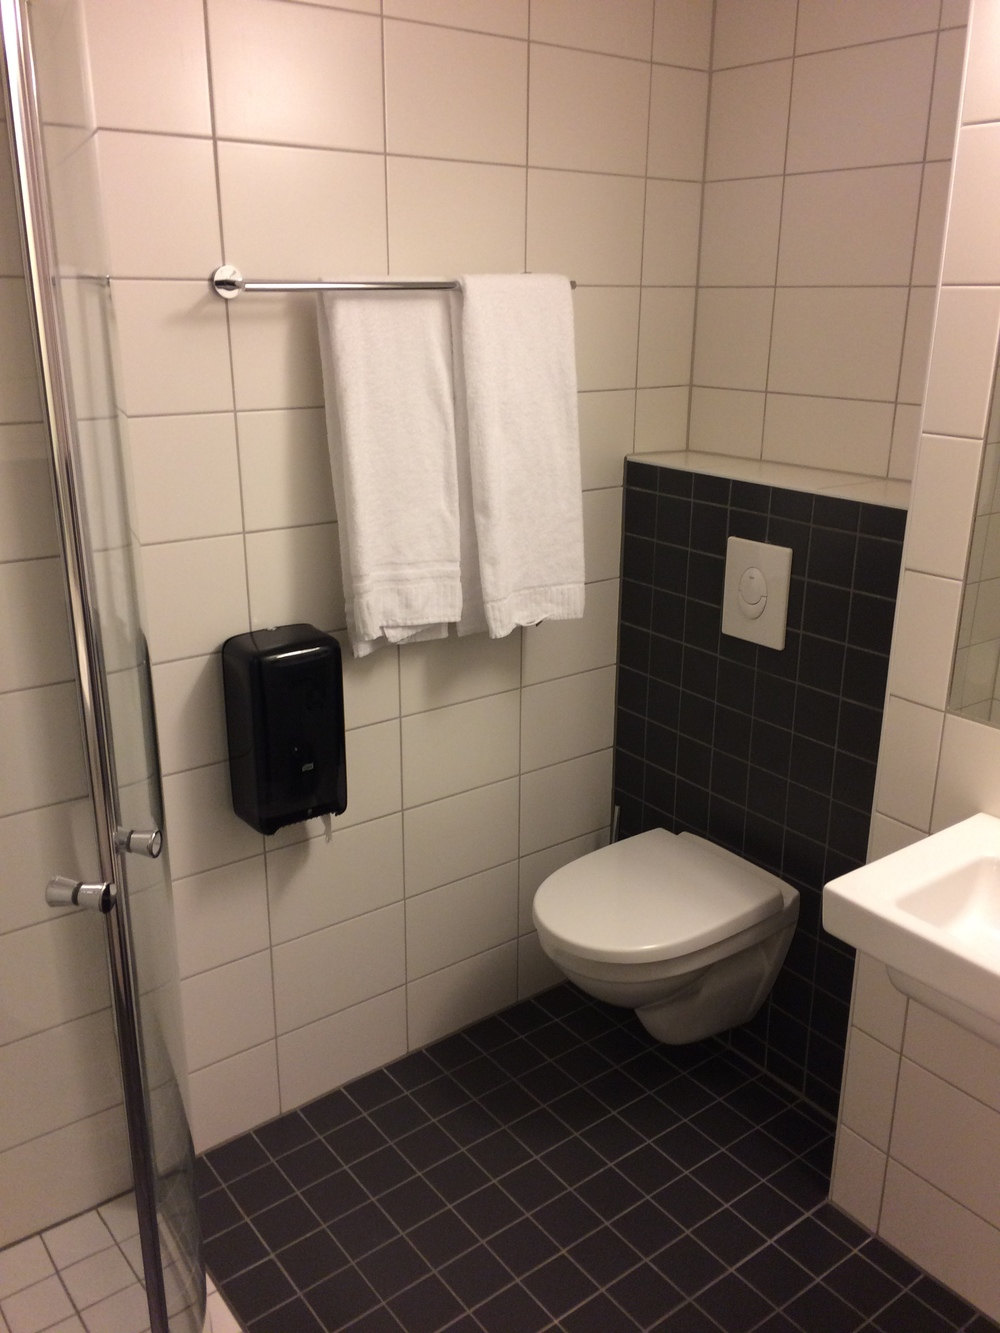 The bathroom was surprisingly a sanctuary of warmth after a long day out in the cold.